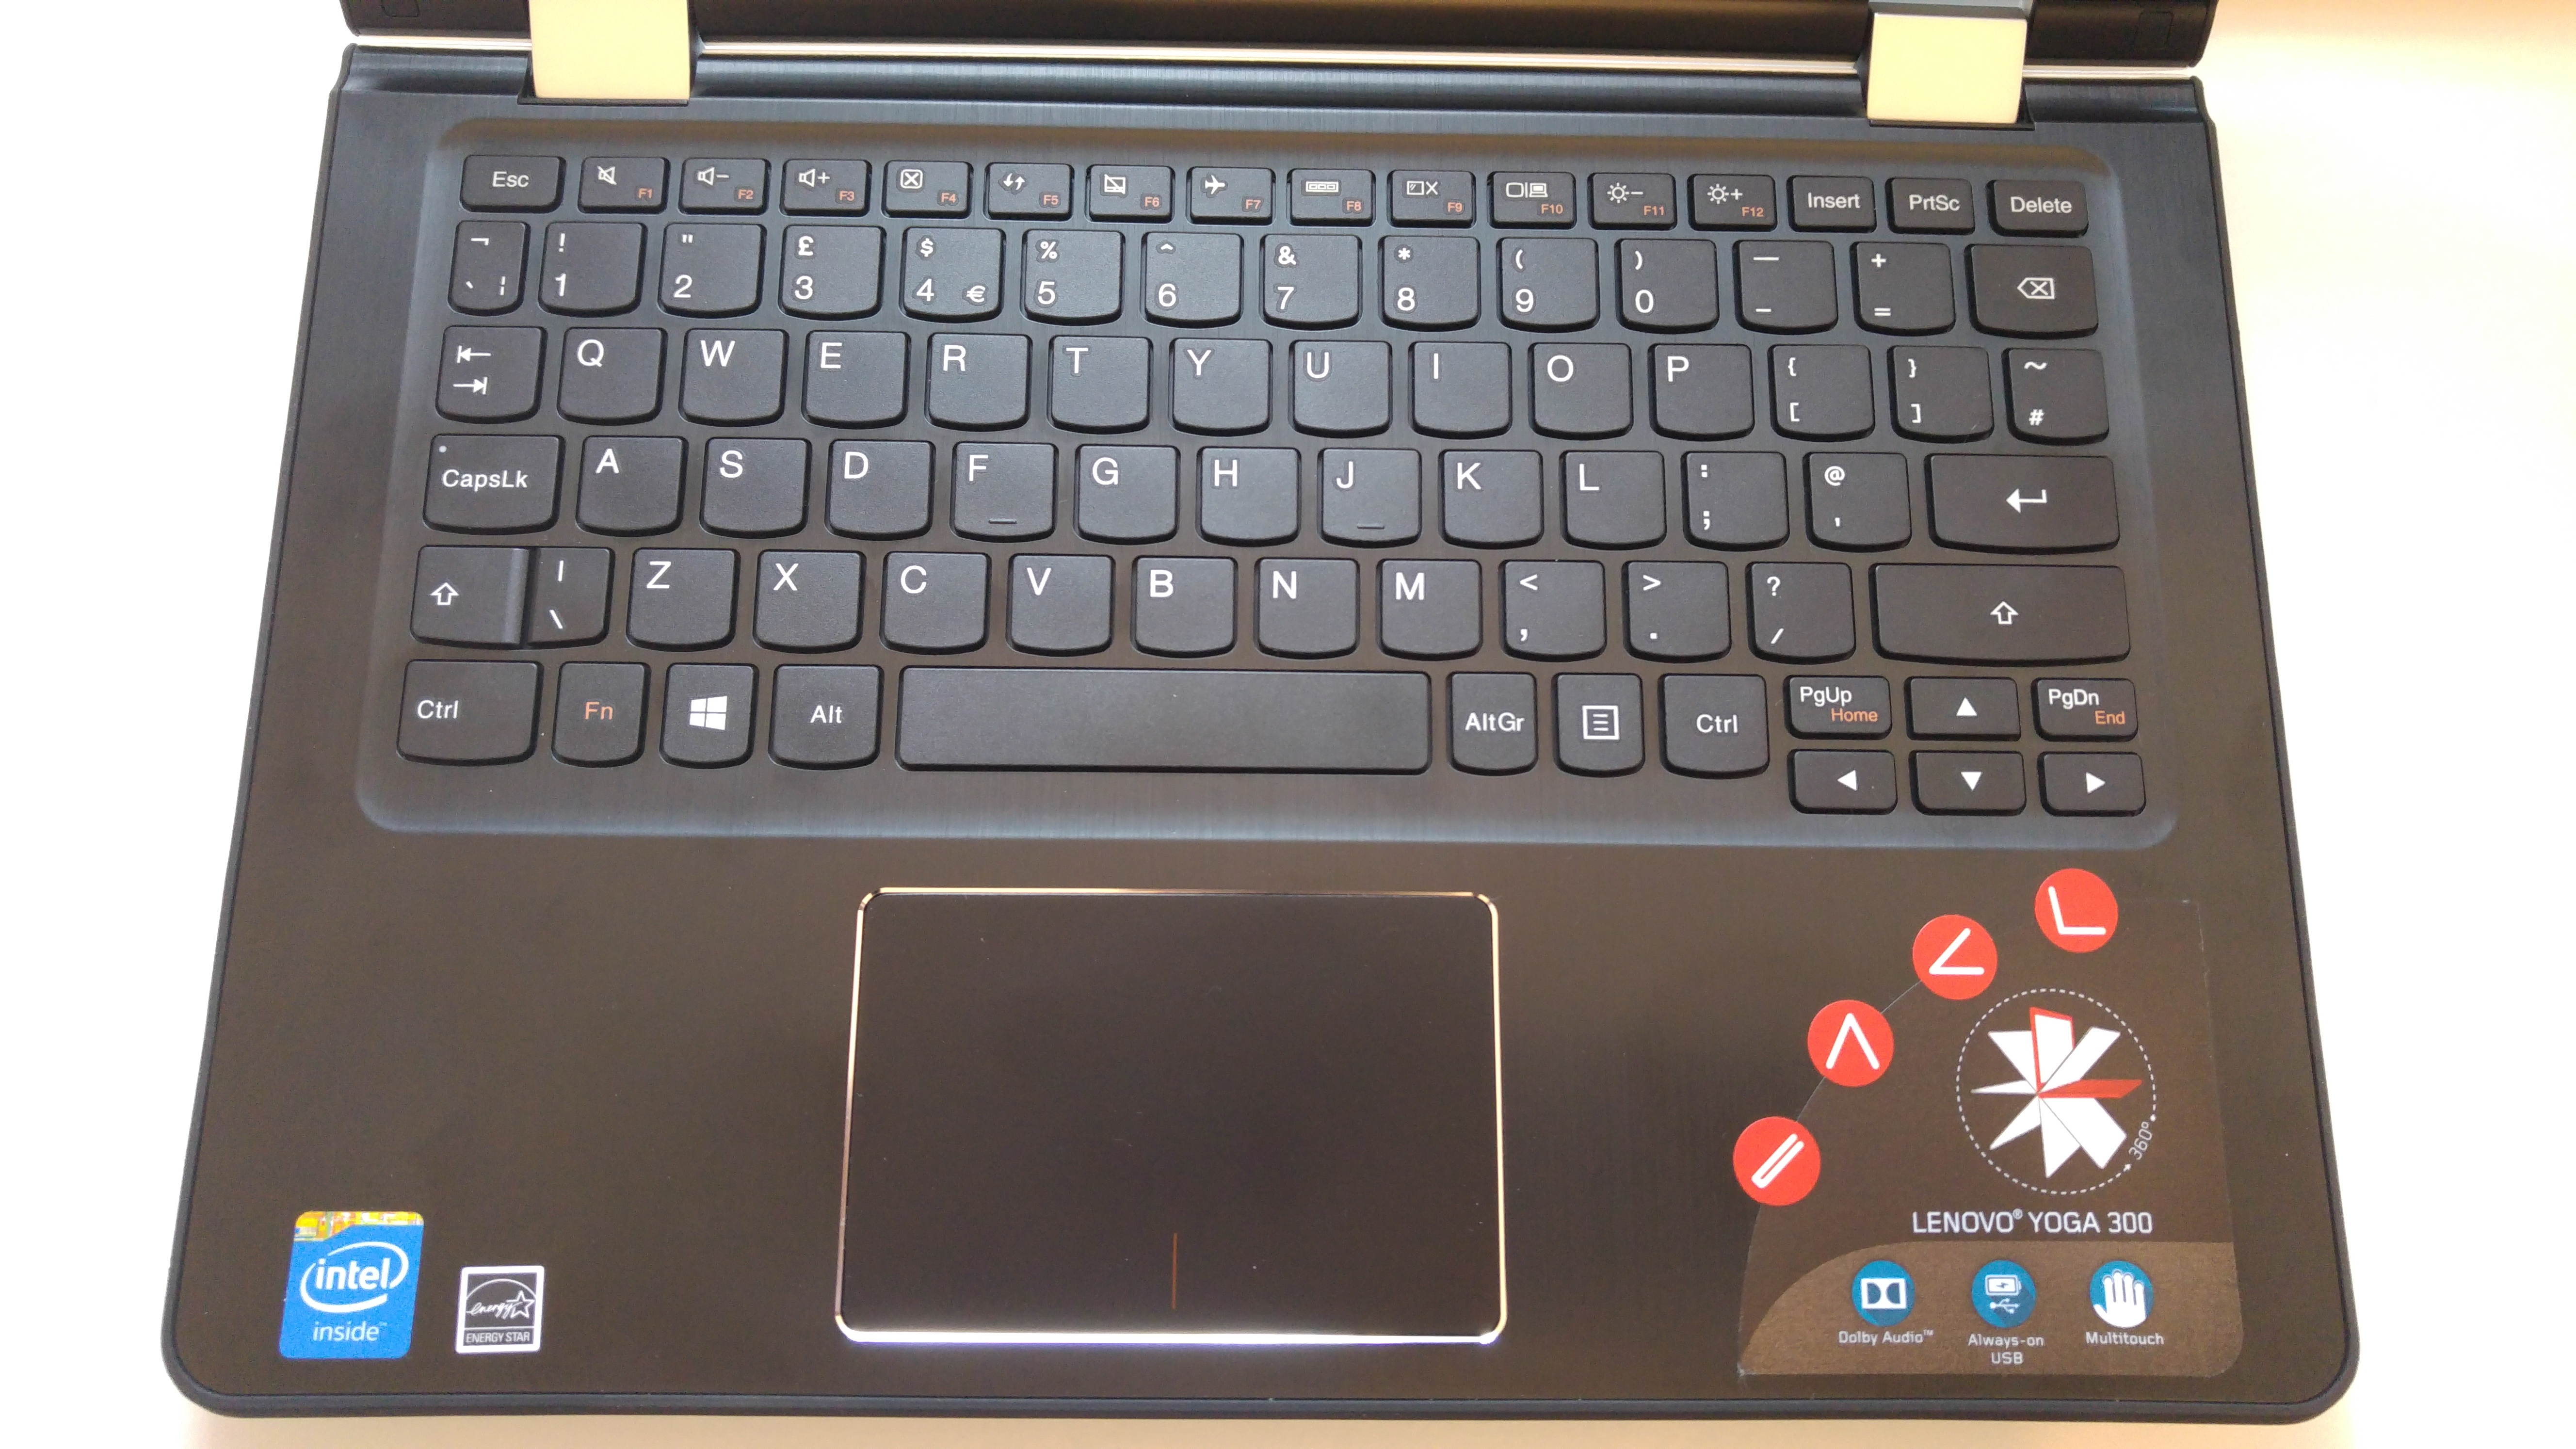 I bought a Lenovo Yoga 300, this is why I'm sending it back